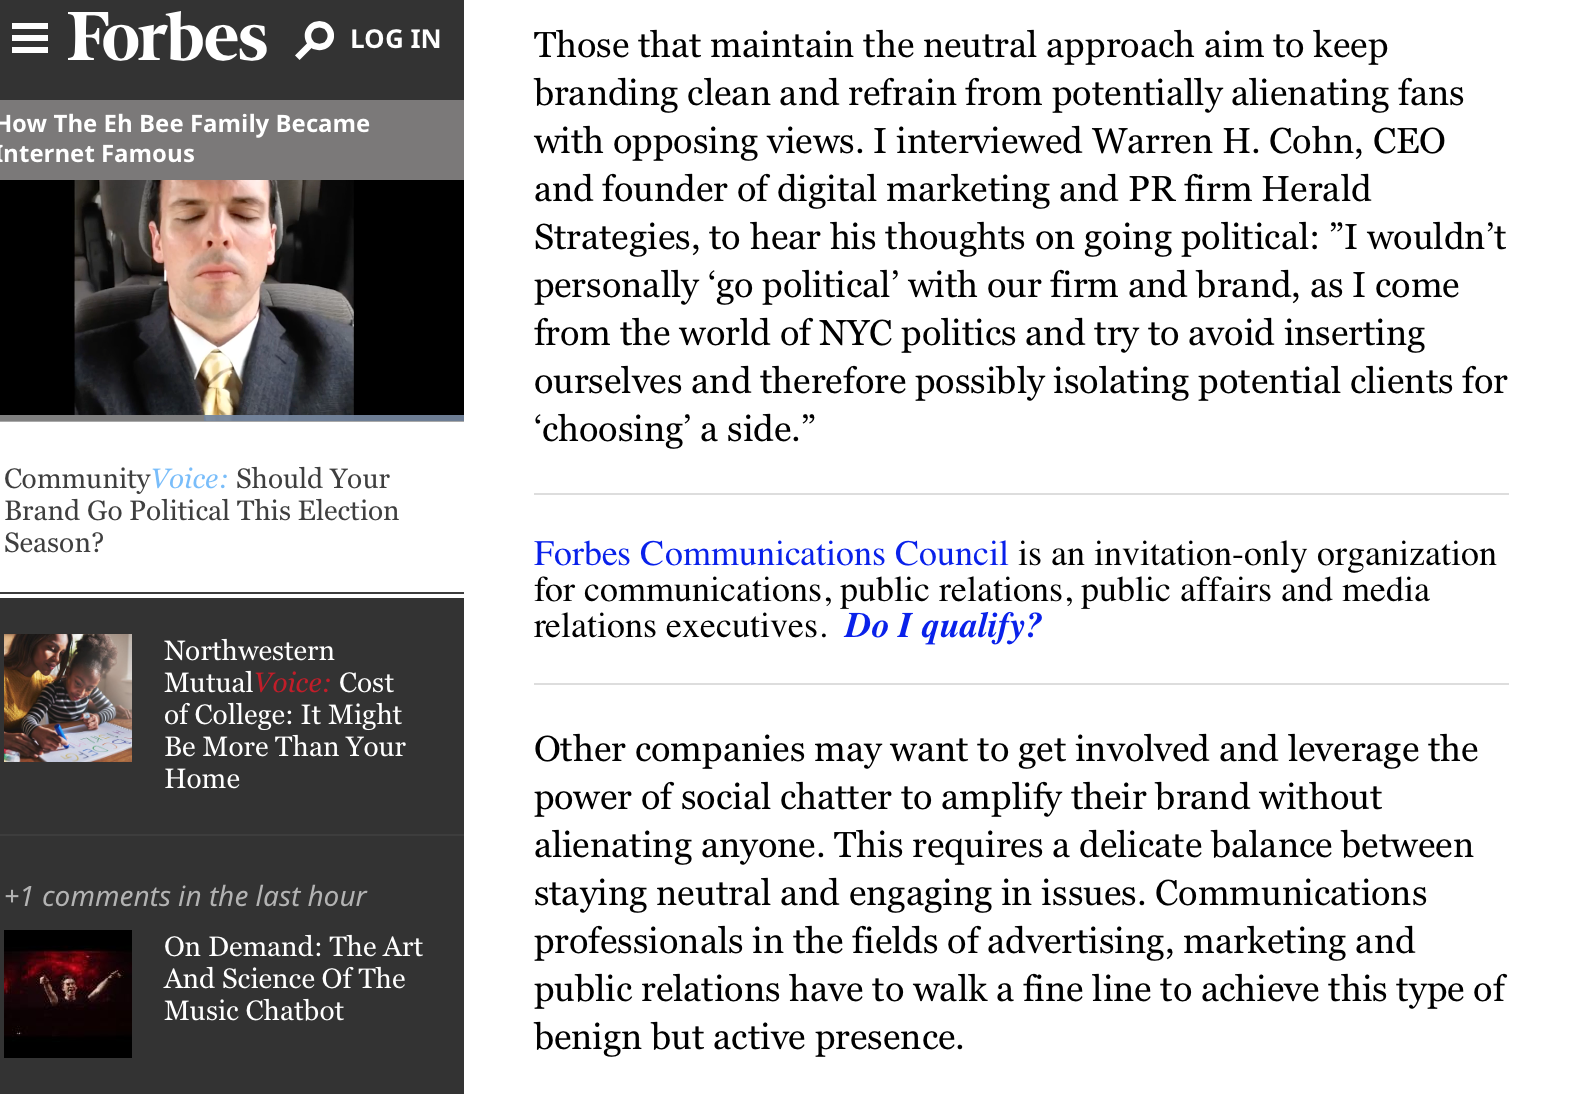 Our CEO Warren H. Cohn in Forbes